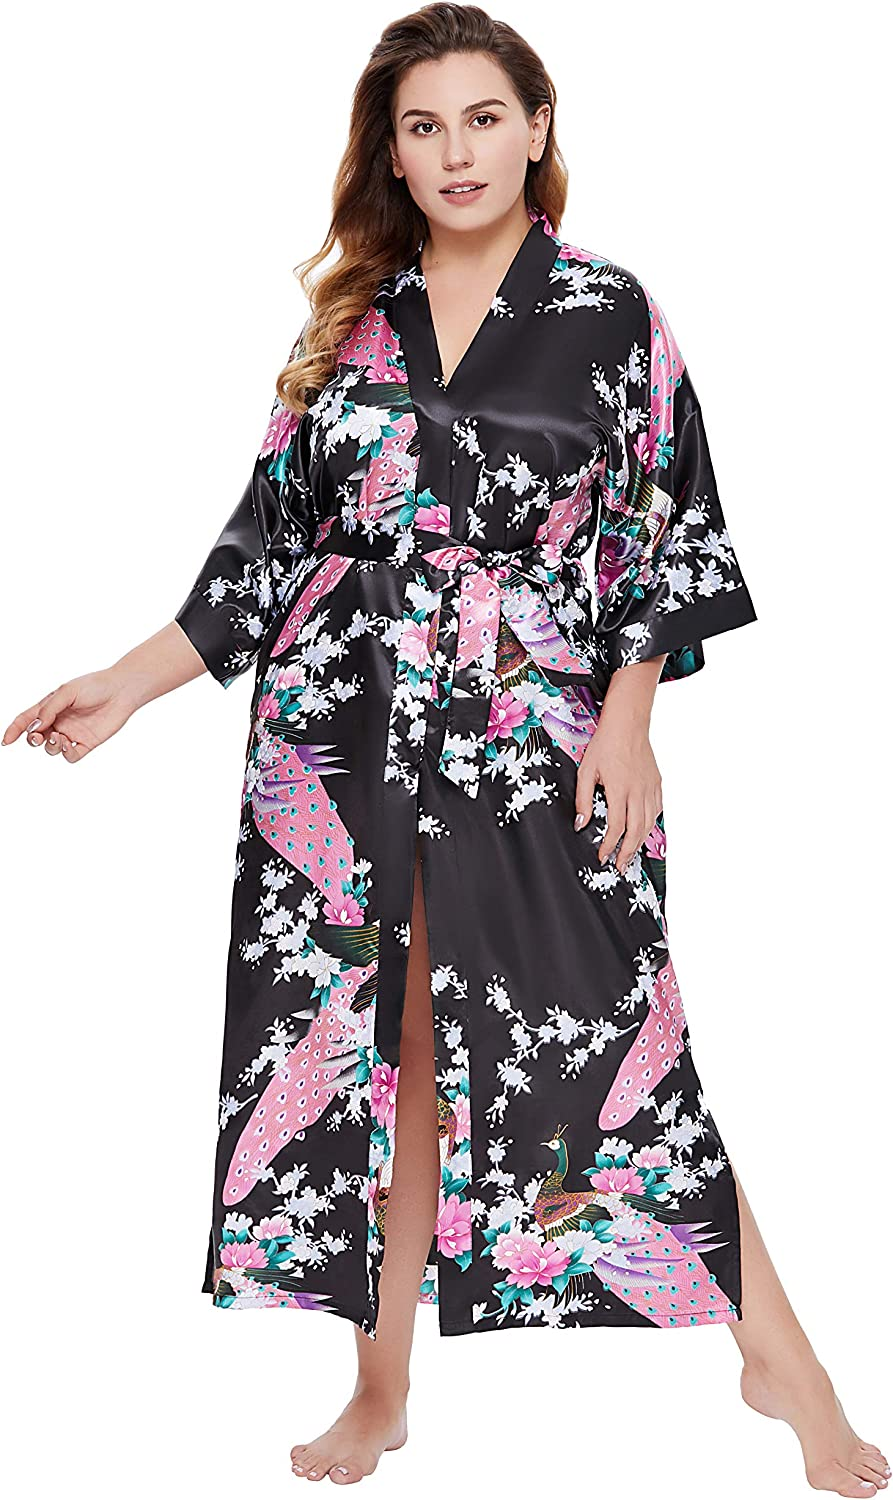 BABEYOND Women's Plus Size Kimono Max 5 ☆ very popular 47% OFF Robe a Robes Peacock with Long